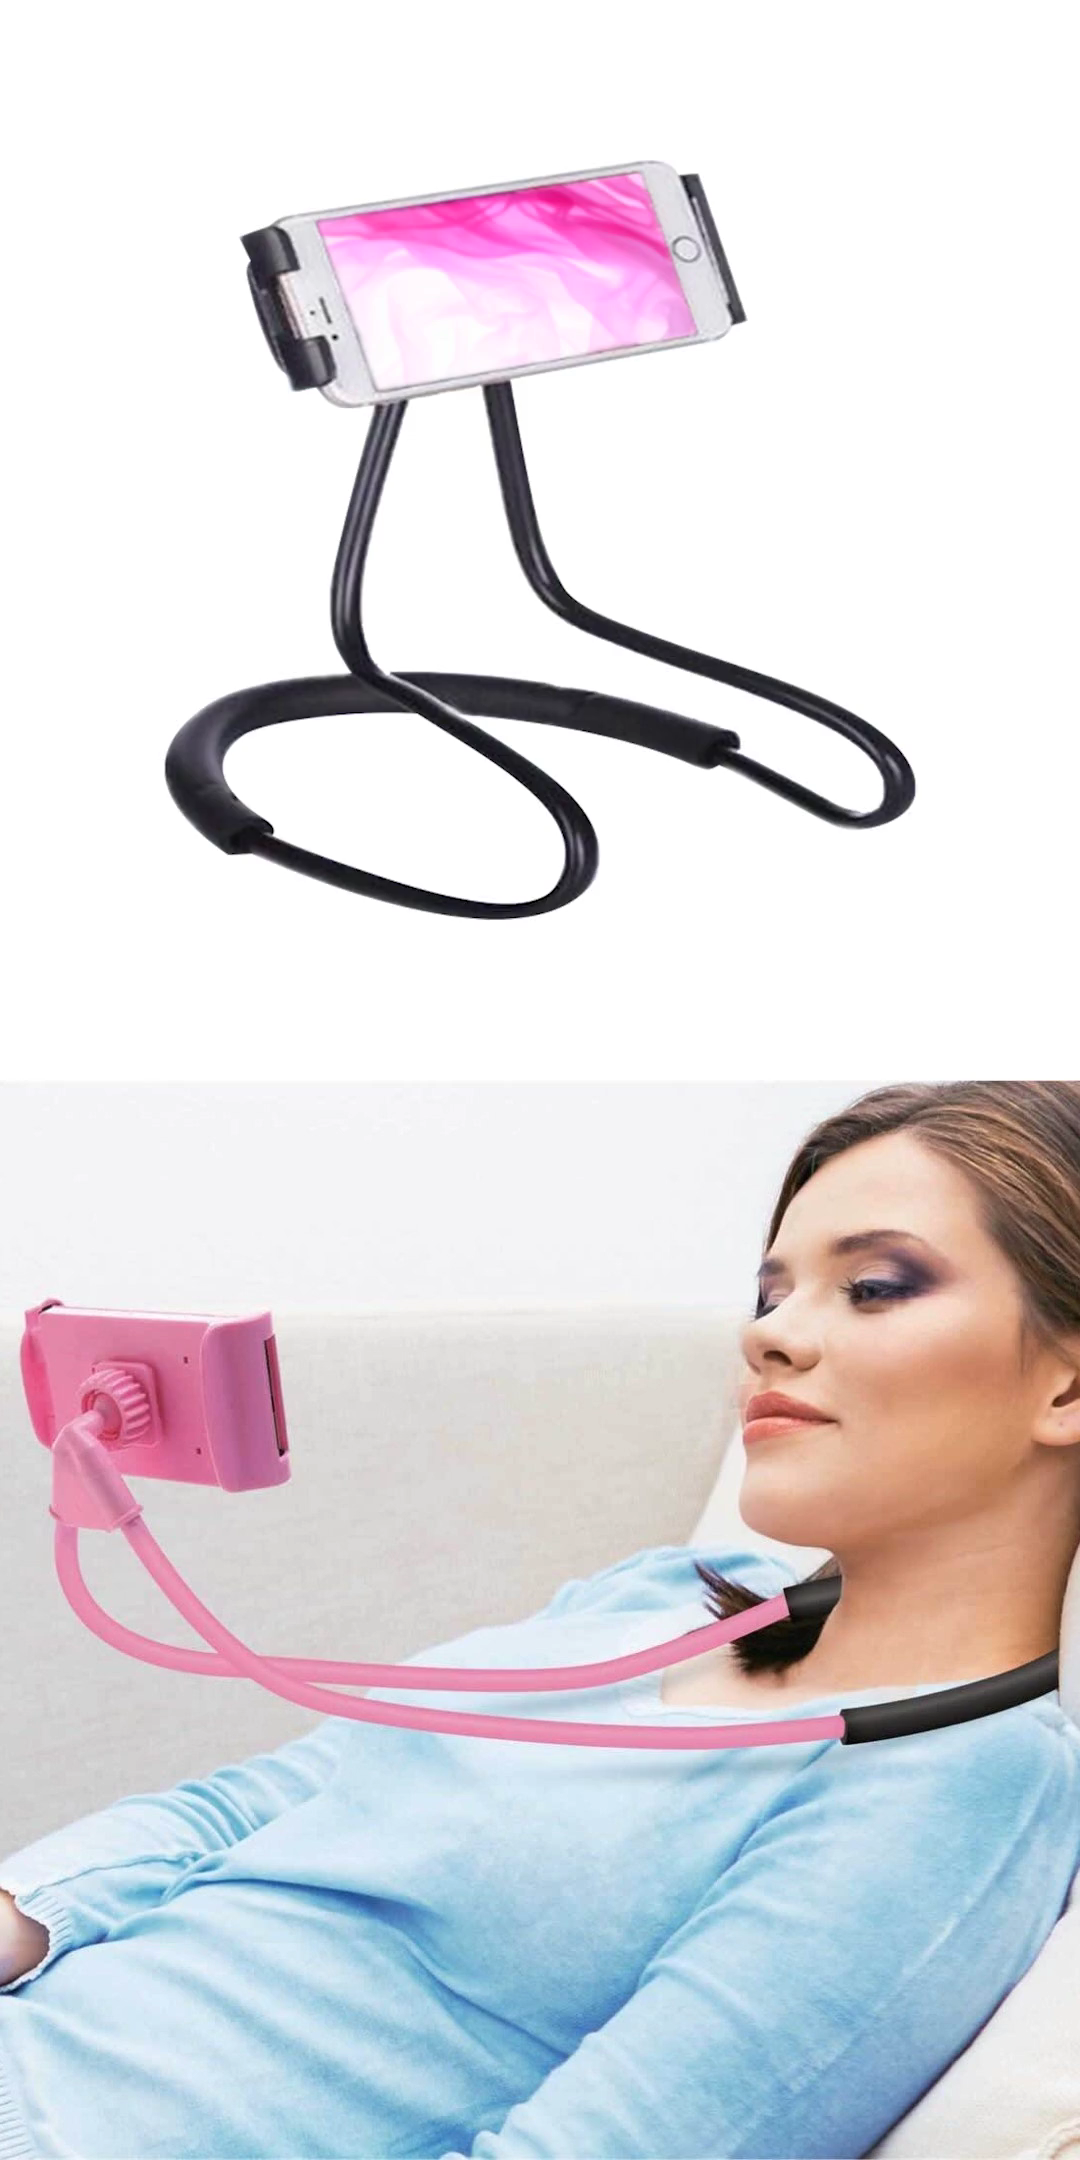 $39.99 - Lazy Phone Holder